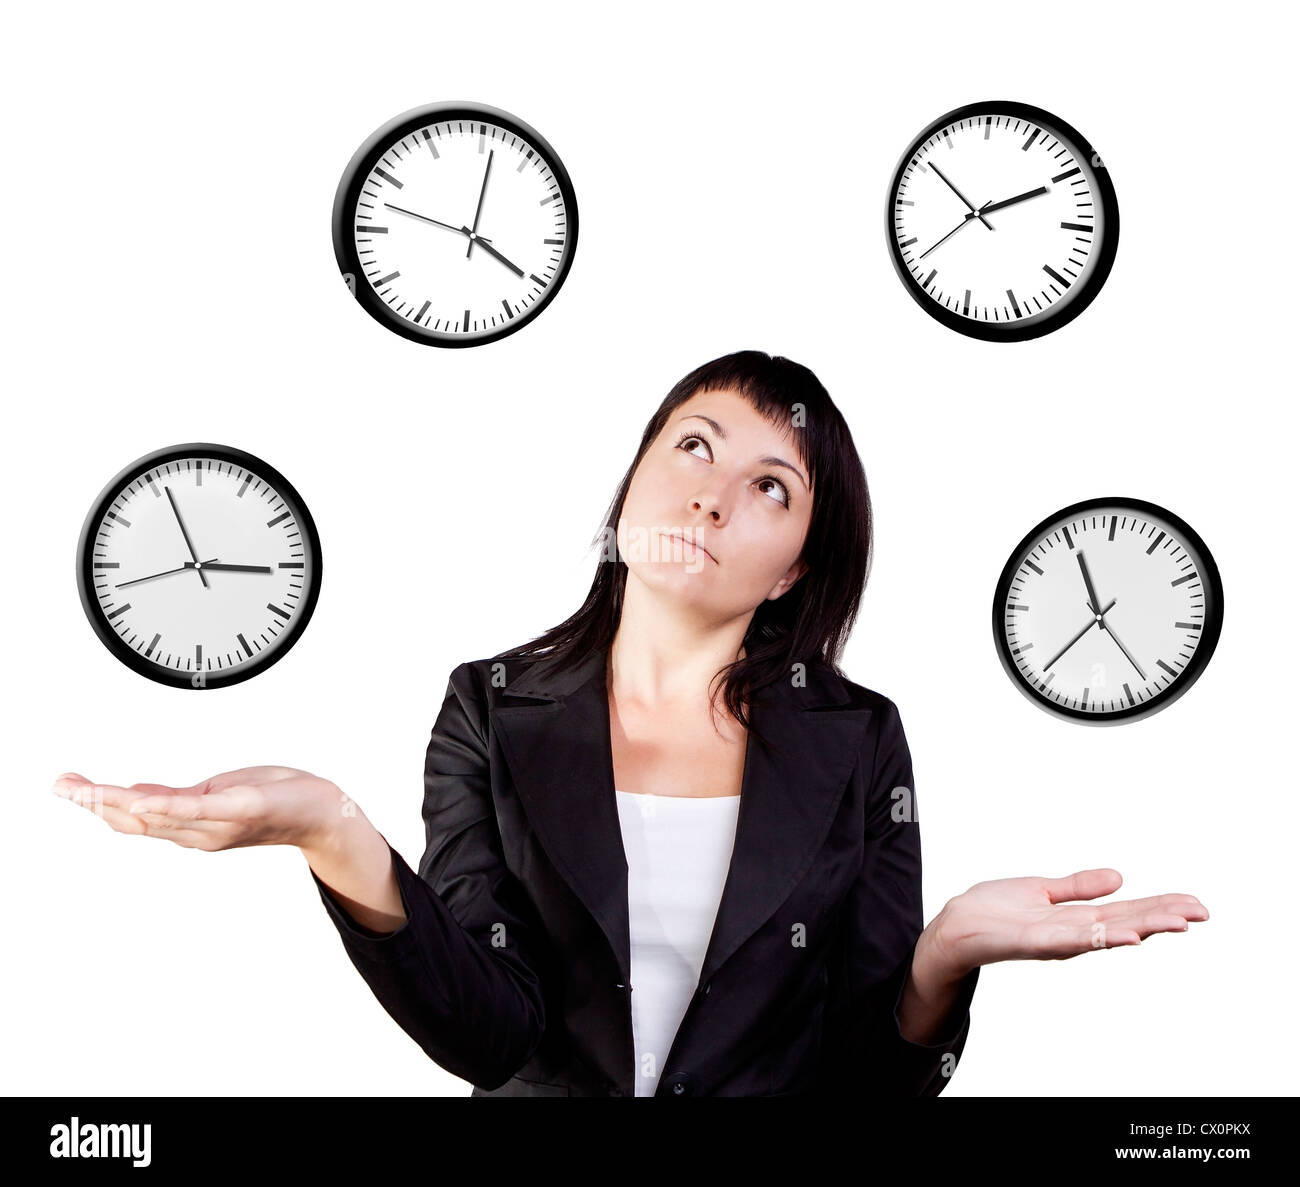 A young woman juggling the management of time. Isolated on a white background. - Stock Image